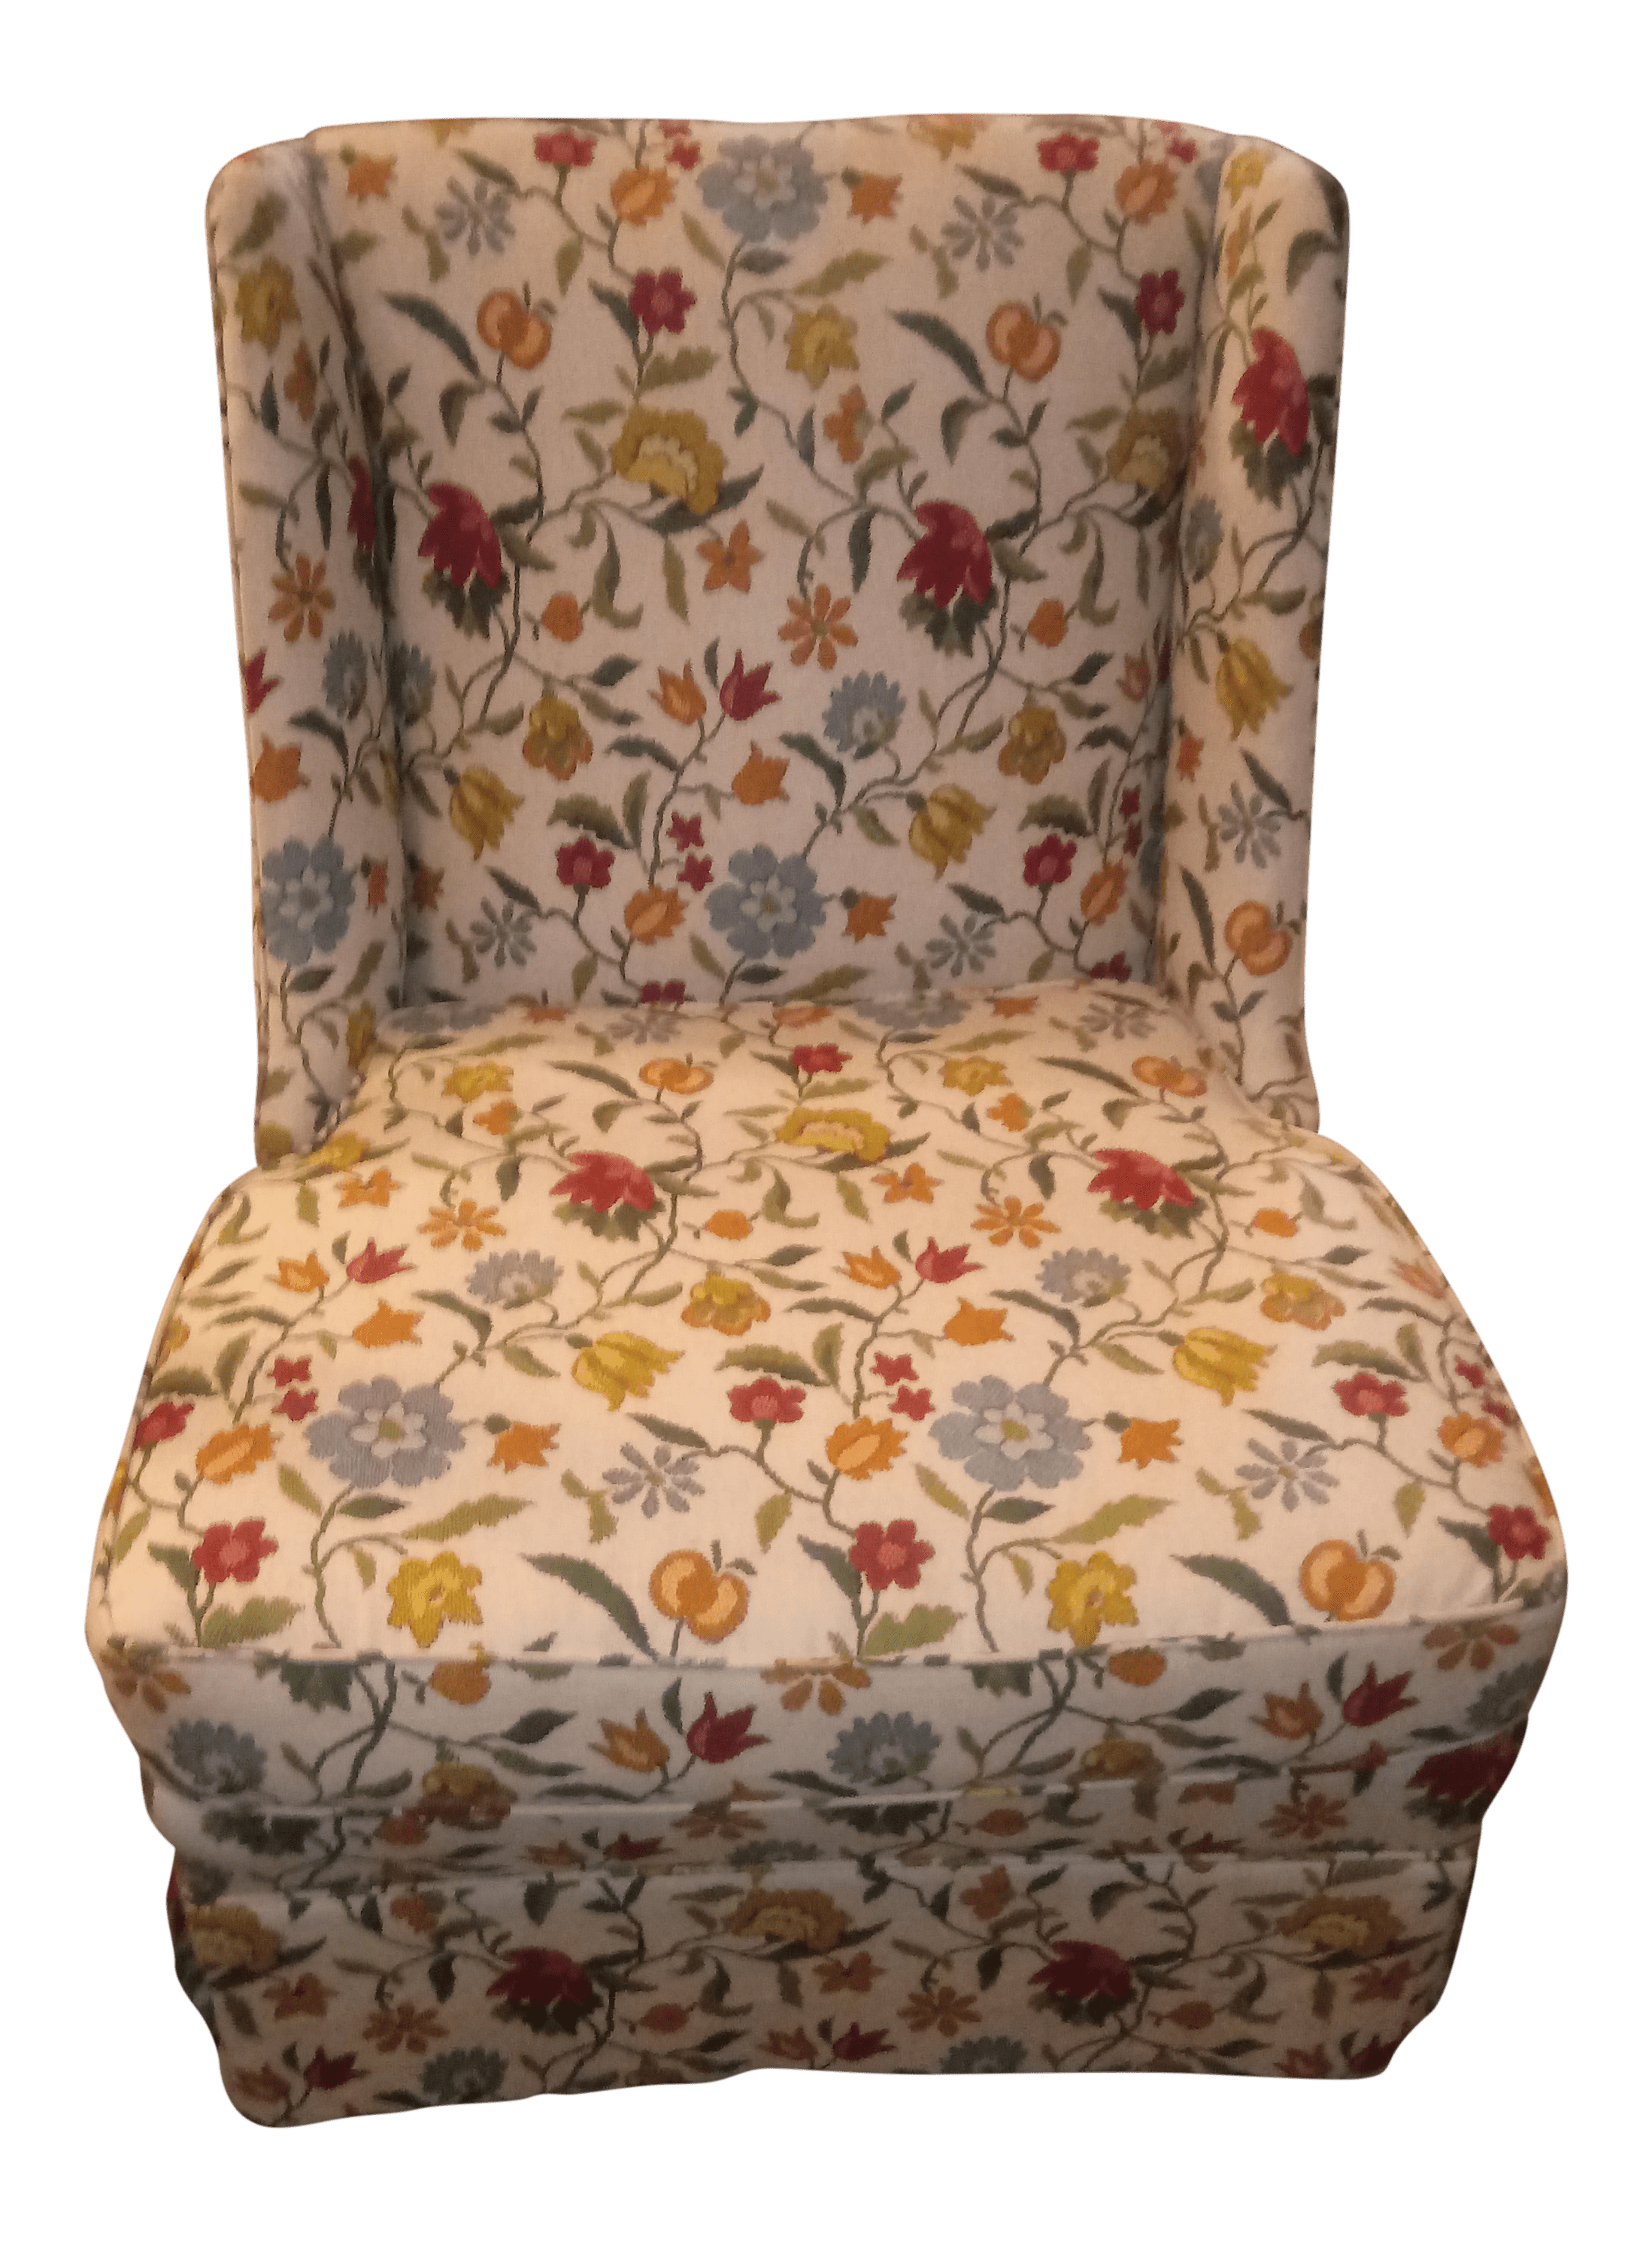 floral print accent chairs office chair arms or not 20th century shabby chic chairish